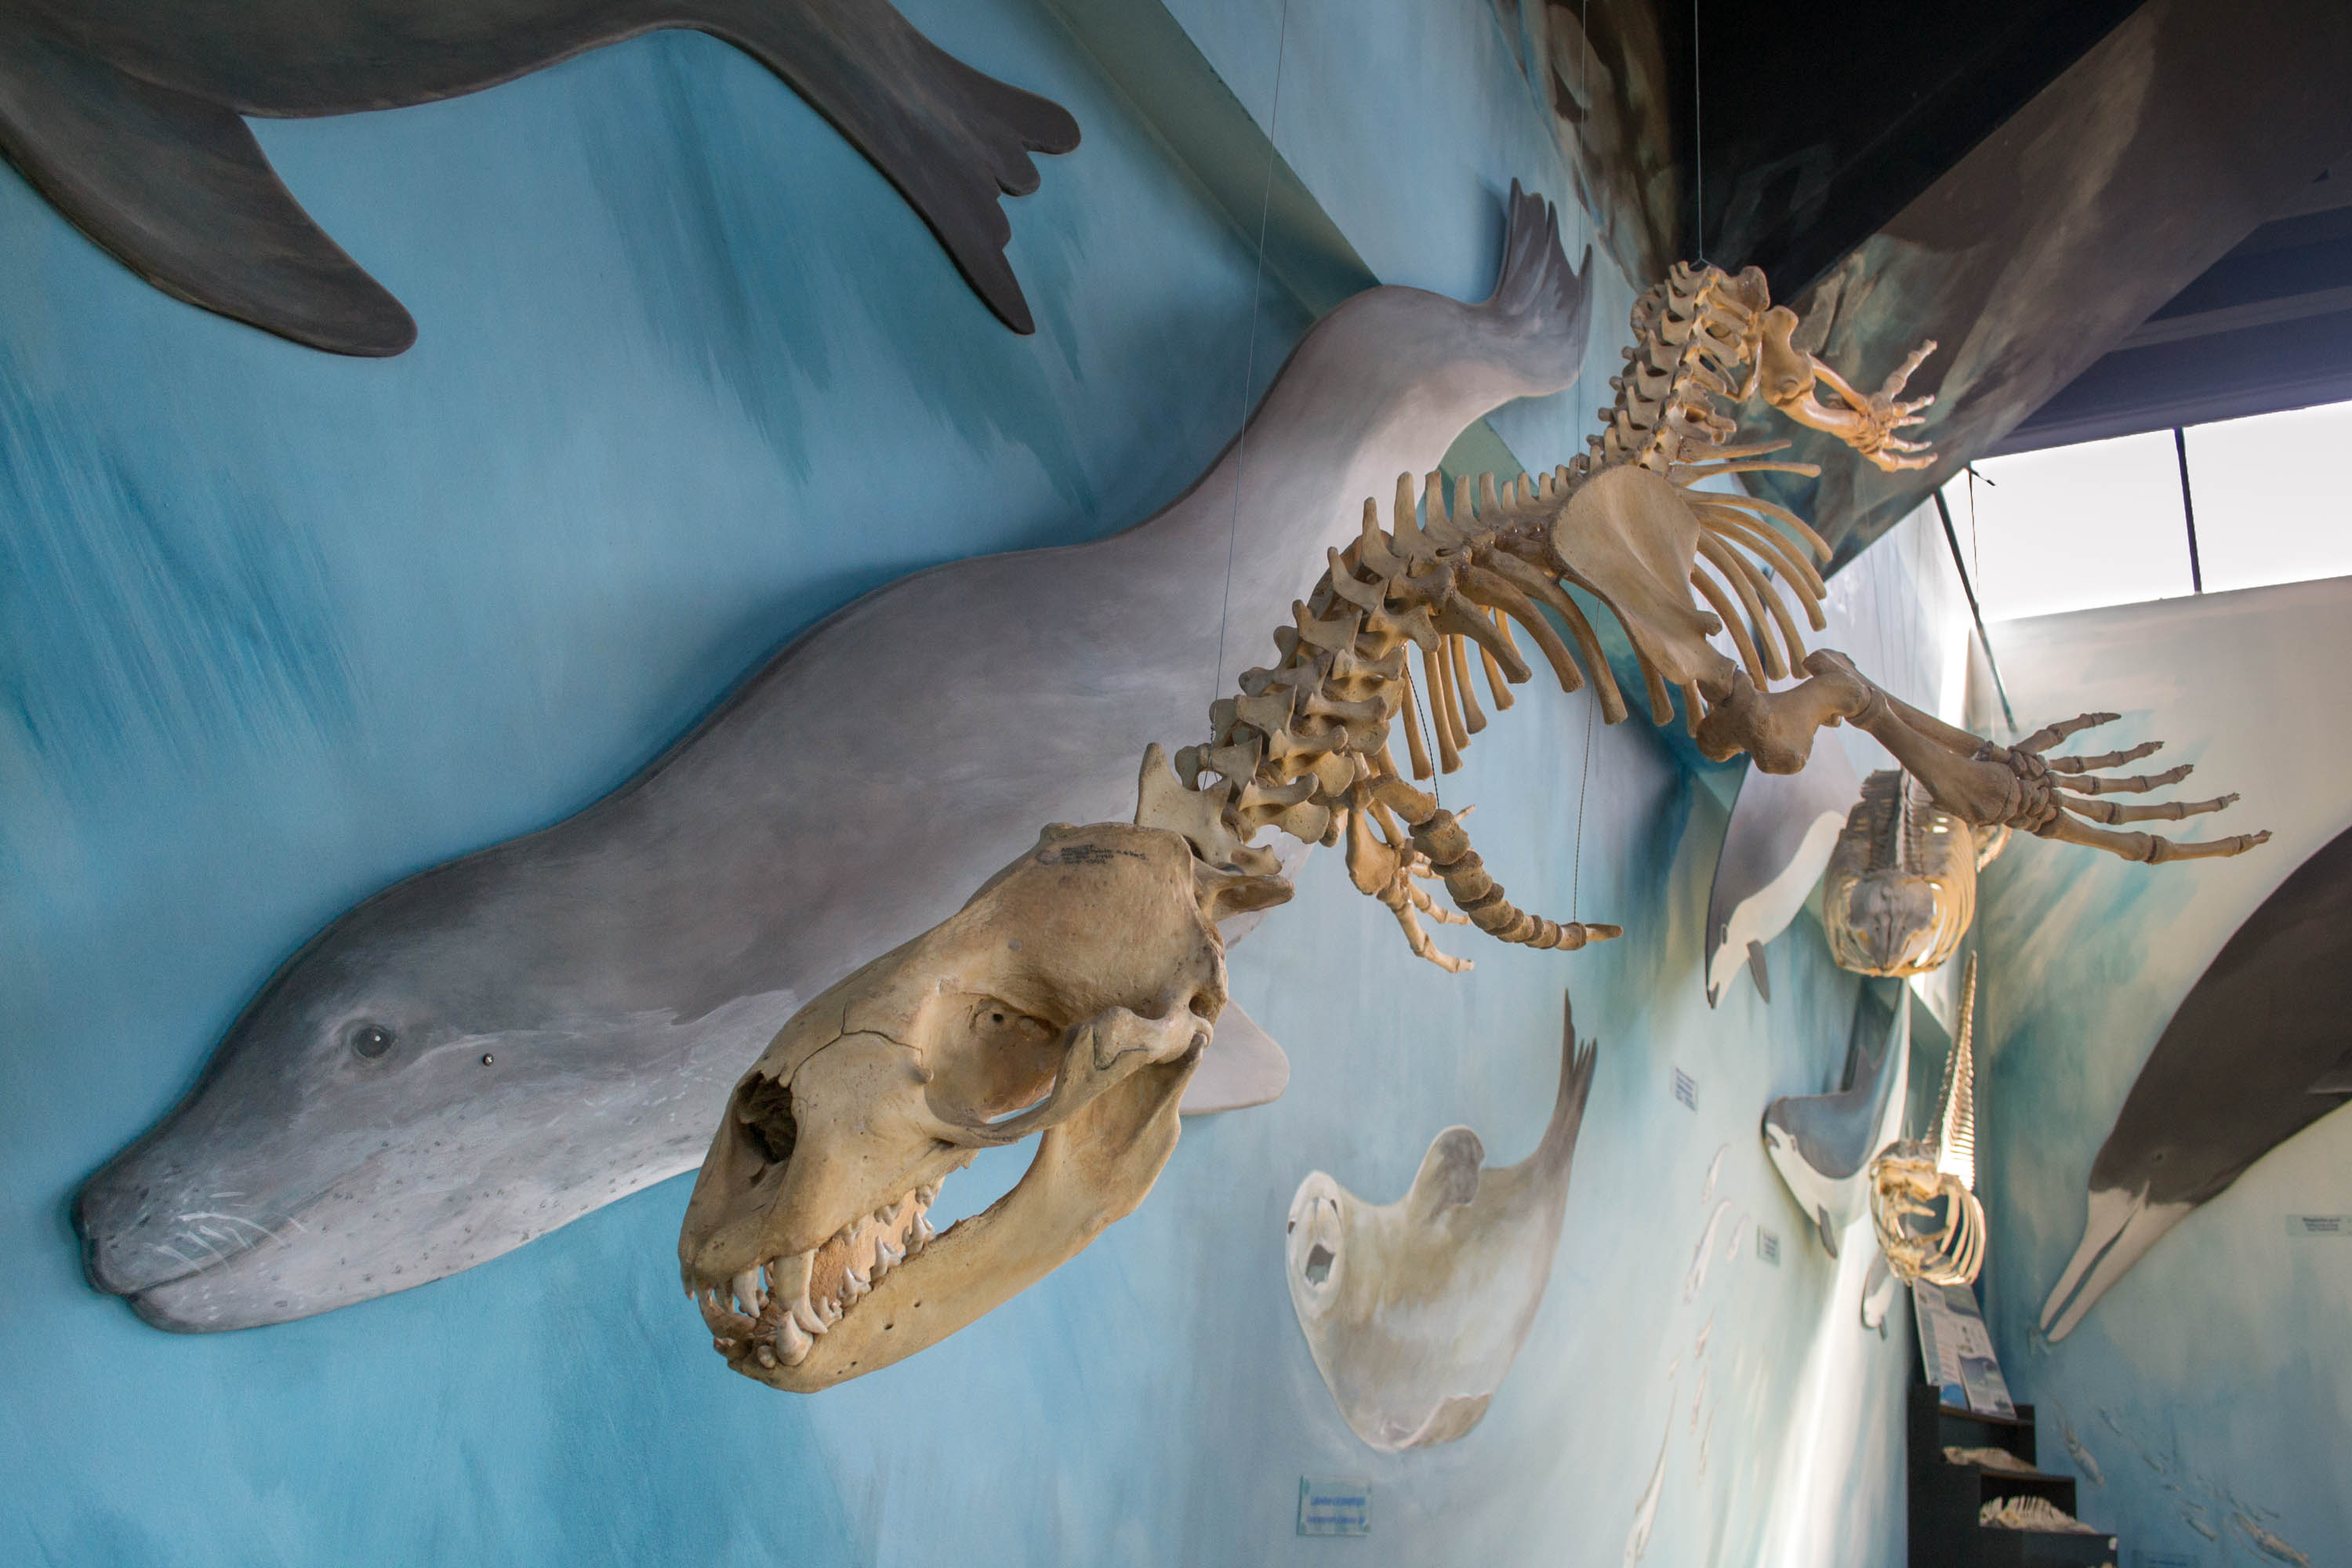 Leopard Seal skeleton with a live representation painted behind.